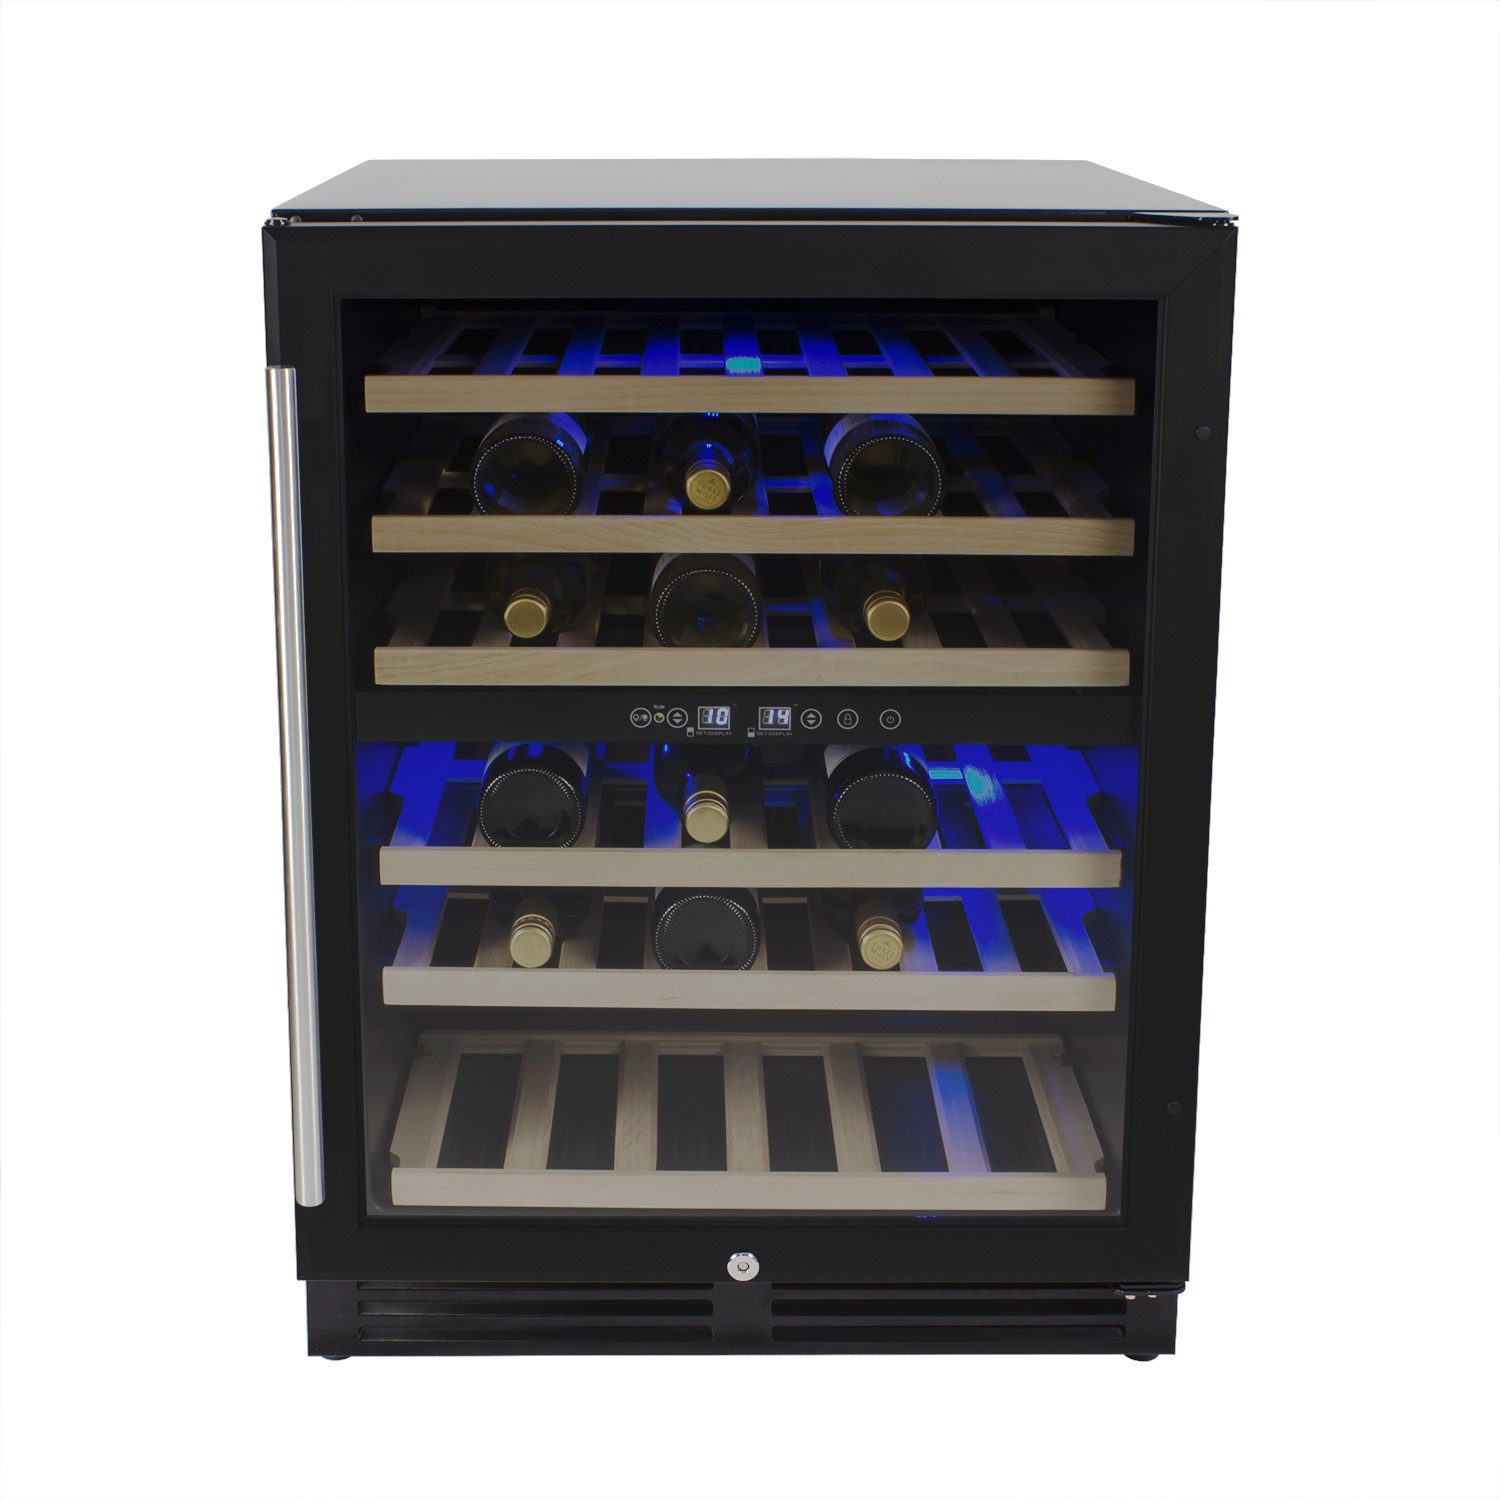 Grade A3 Electriq 60cm Wide 51 Bottle Dual Zone Wine